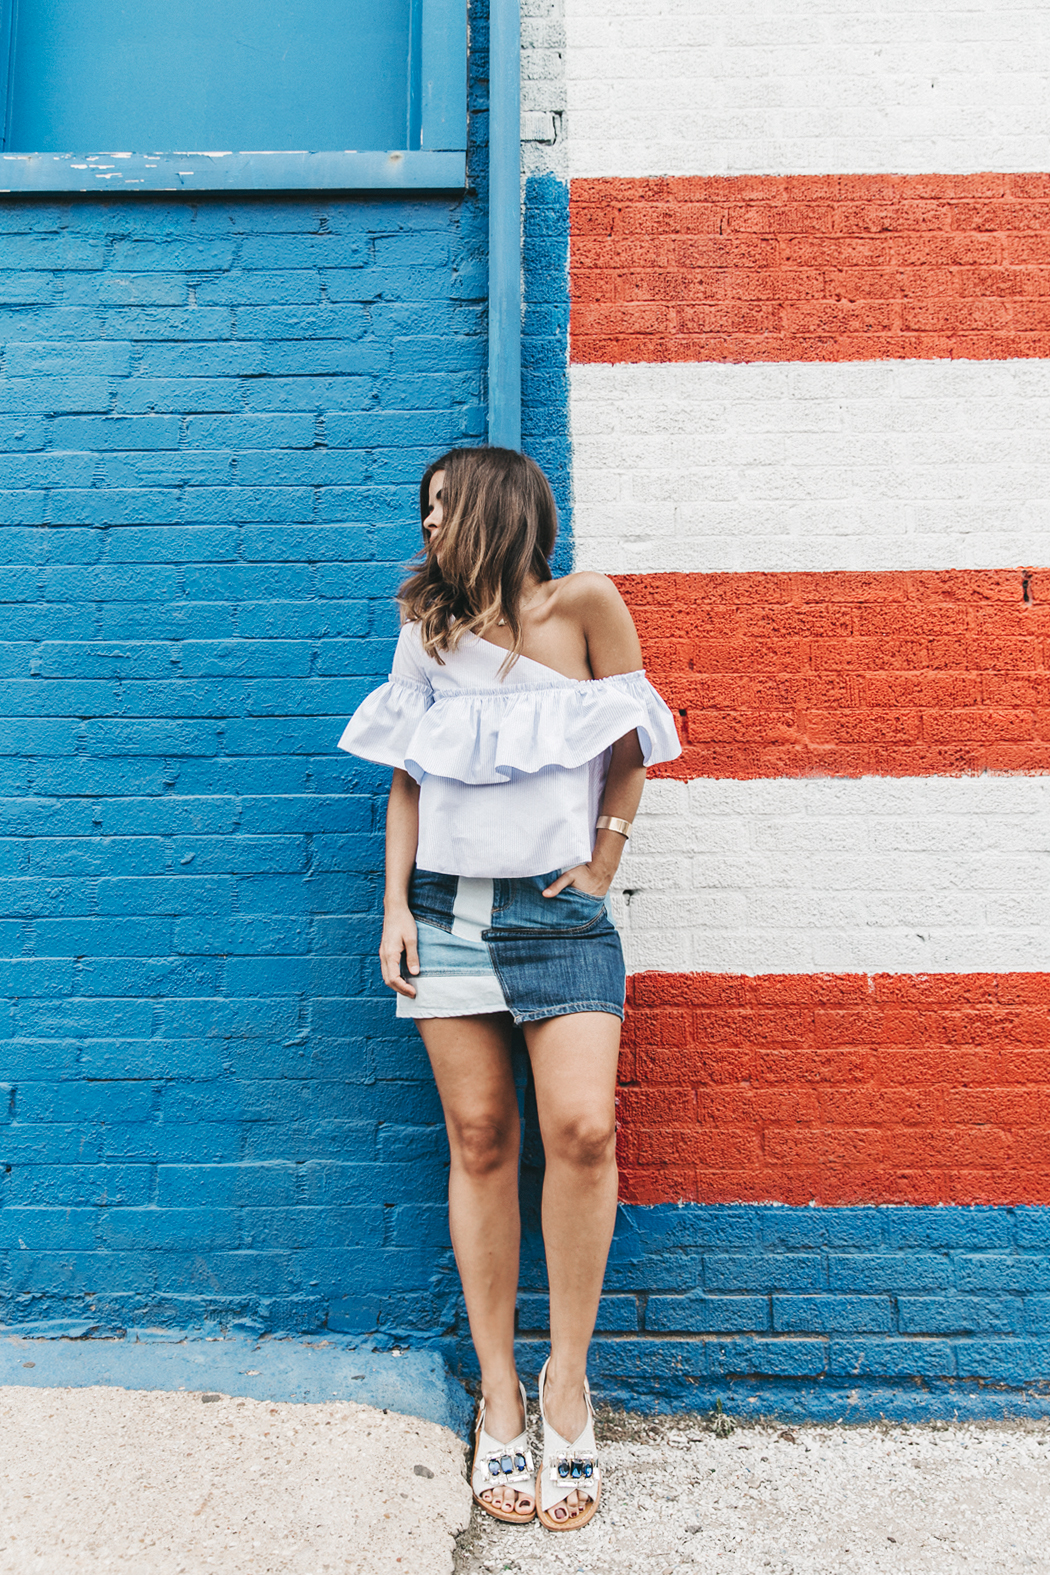 Patchwork_Denim_Skirt-Off_Shoulders-Assymetric_Top-Stripes-Marni_Sandals-Outfit-Dallas-10